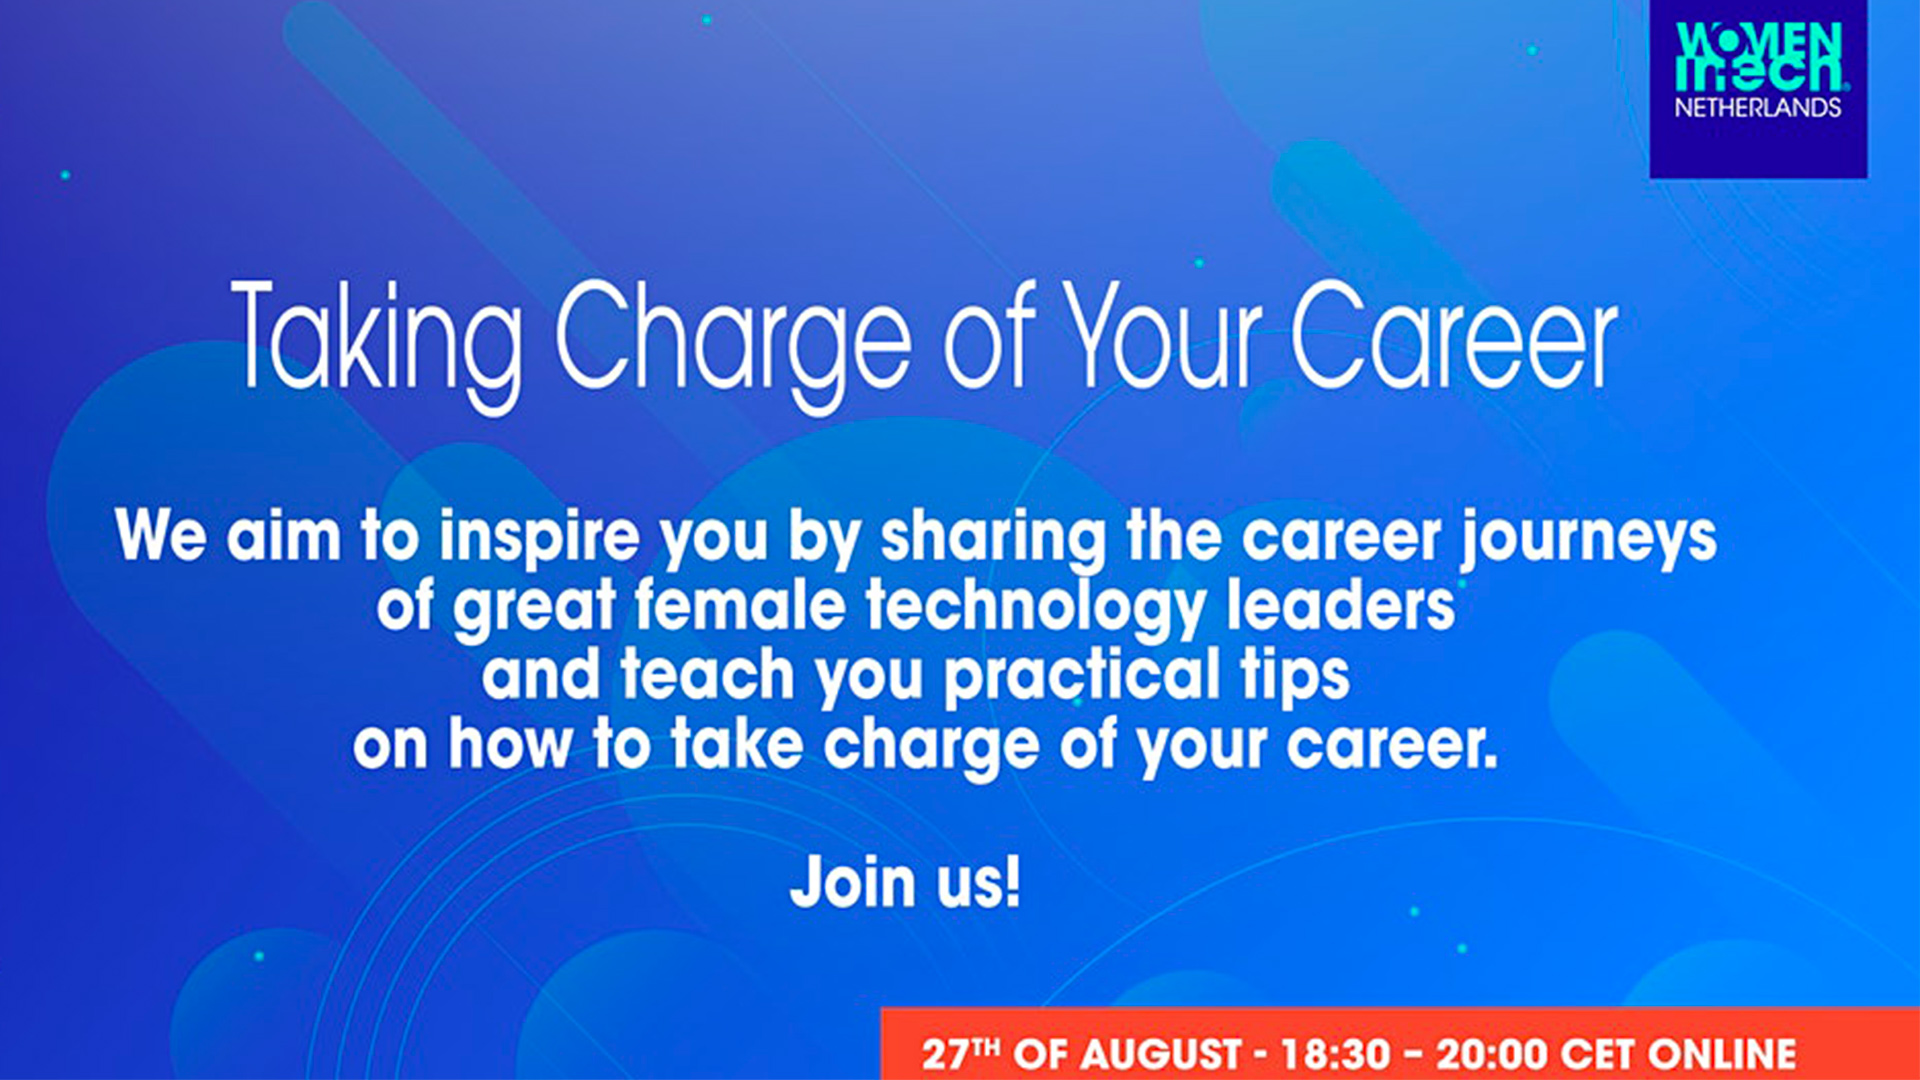 Taking Charge of Your Career!